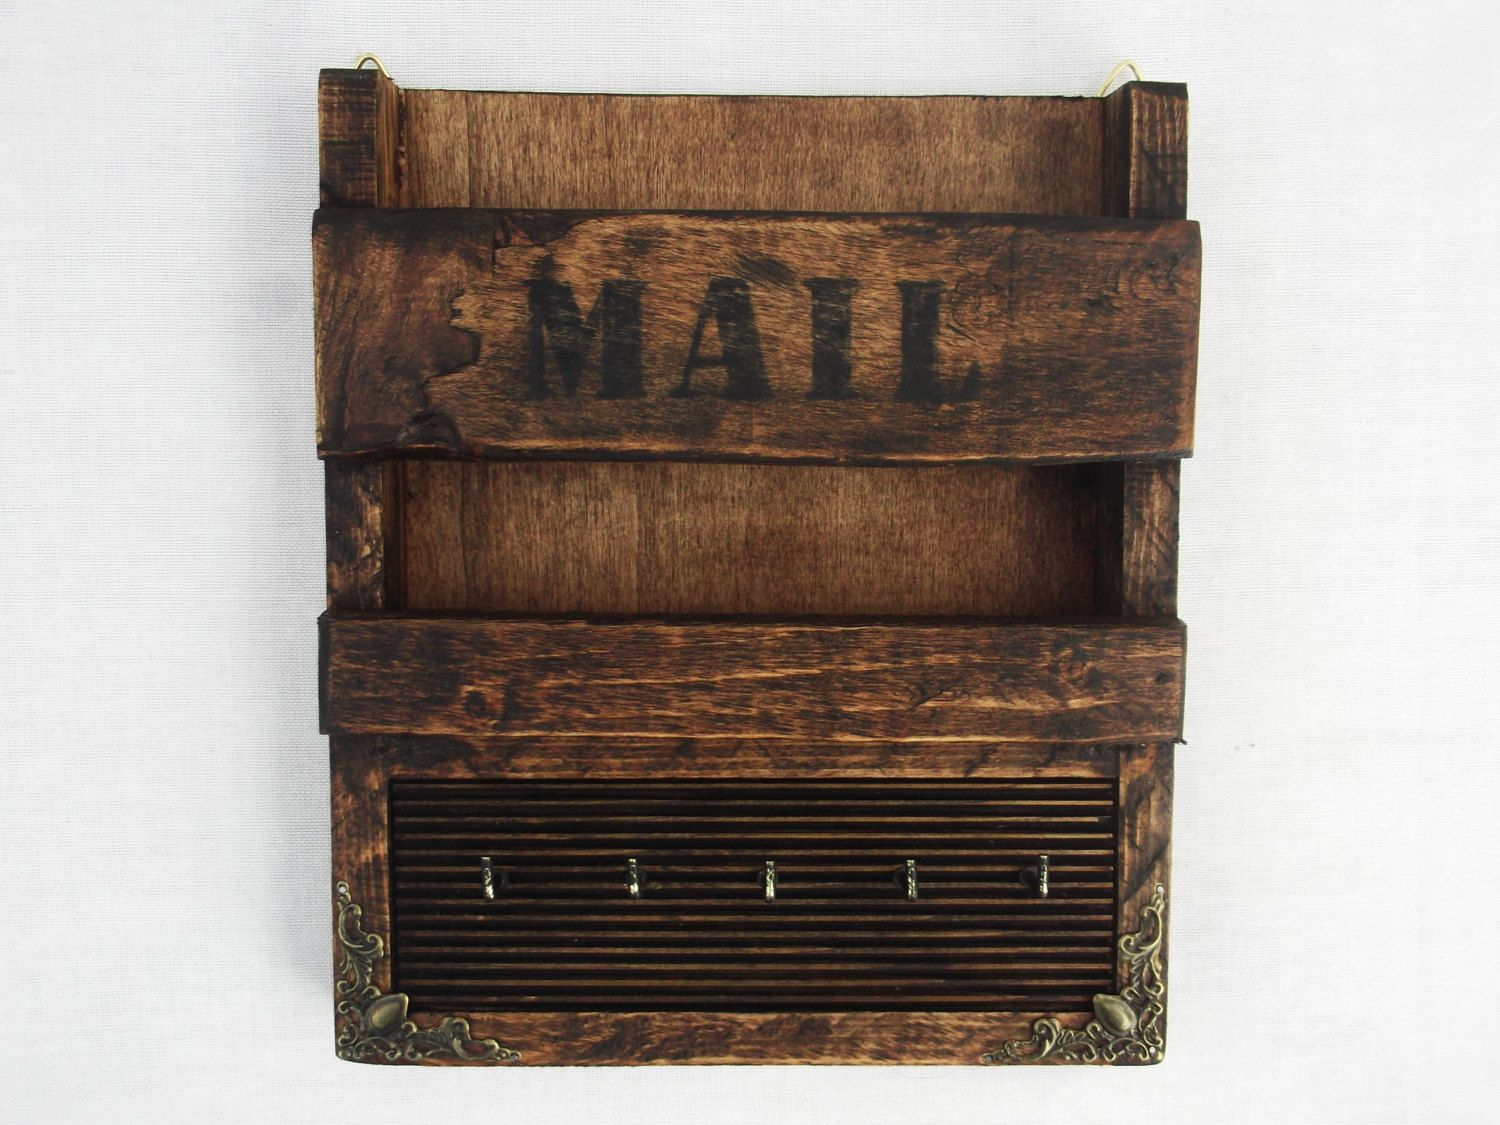 Wooden Key Holder With Shelf Rustic Wooden Wall Hanging Mail Holder And Key Rack